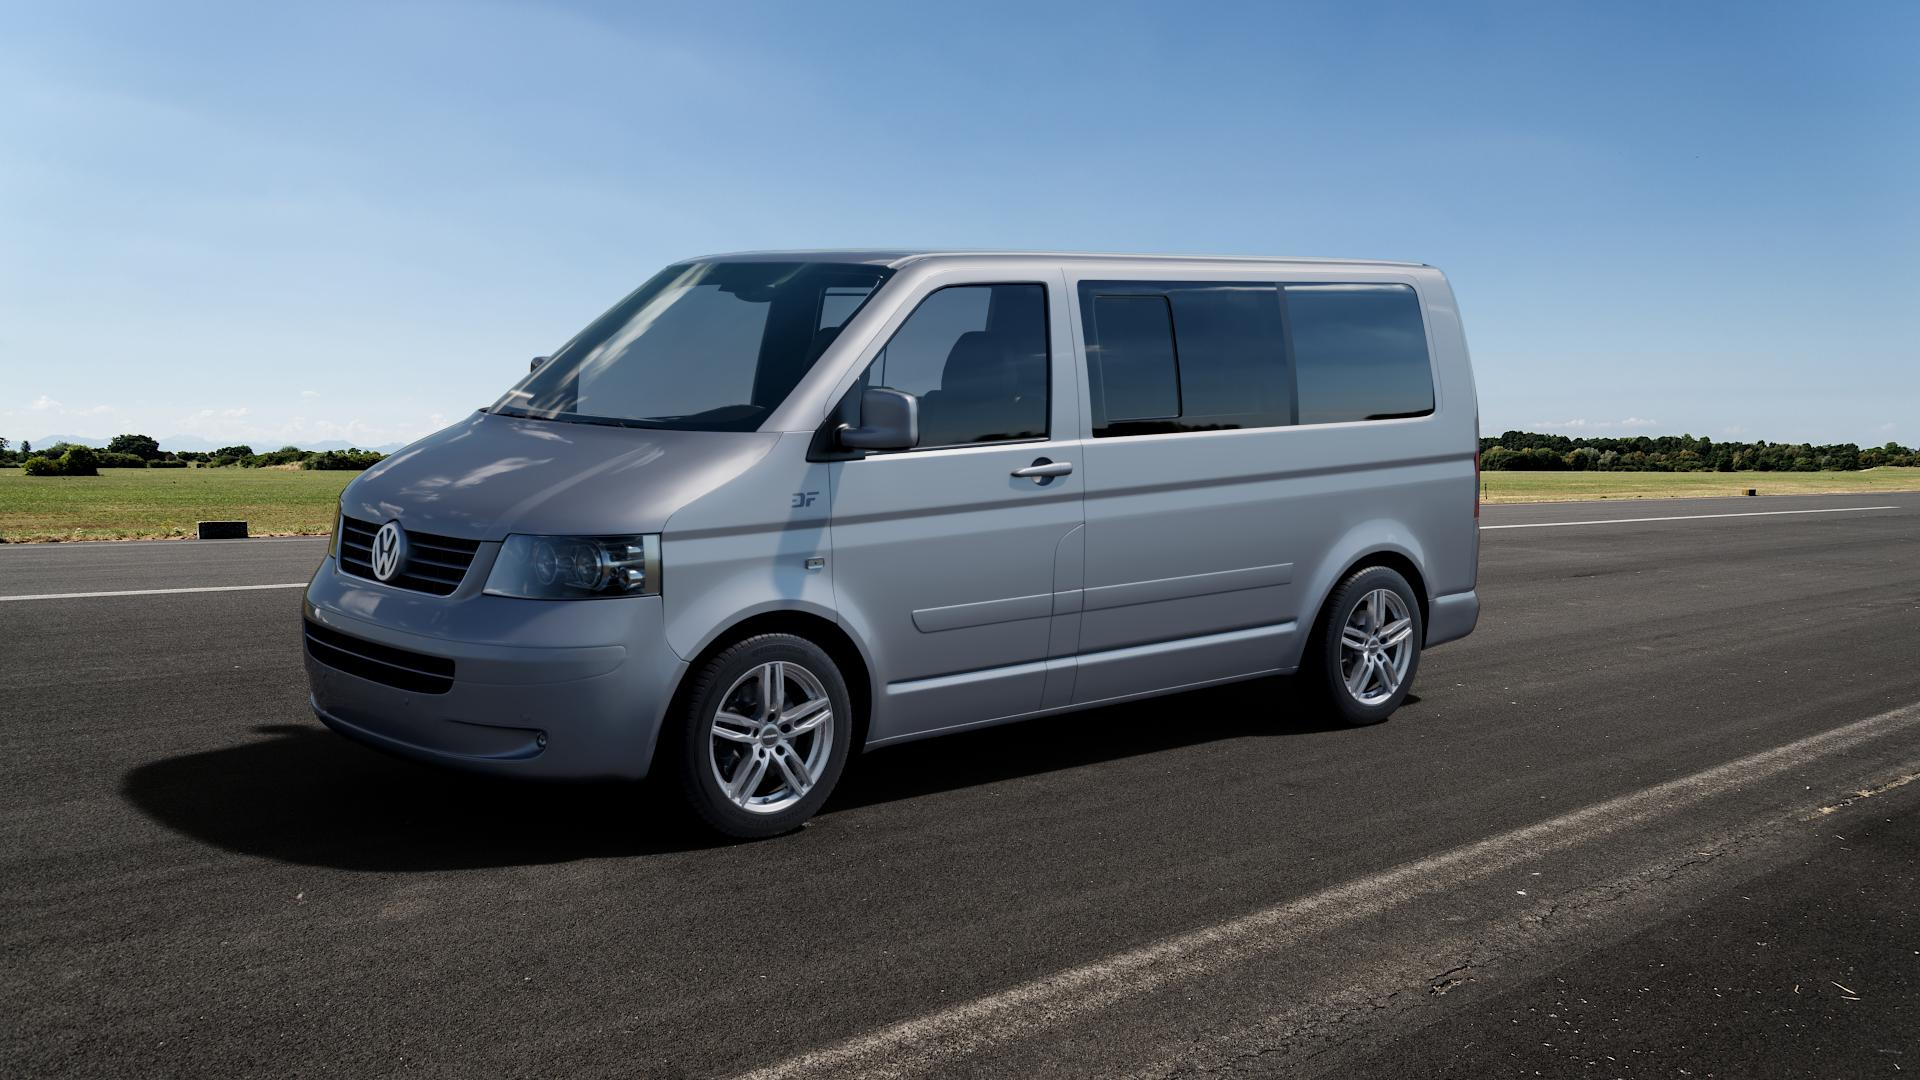 CARMANI 14 Paul kristall silber Felge mit Reifen in 17Zoll Winterfelge Alufelge auf silbernem Volkswagen (VW) T5 Business California Caravelle Kombi Multivan ⬇️ mit 15mm Tieferlegung ⬇️ Big_Vehicle_Airstrip_1 Frontansicht_1